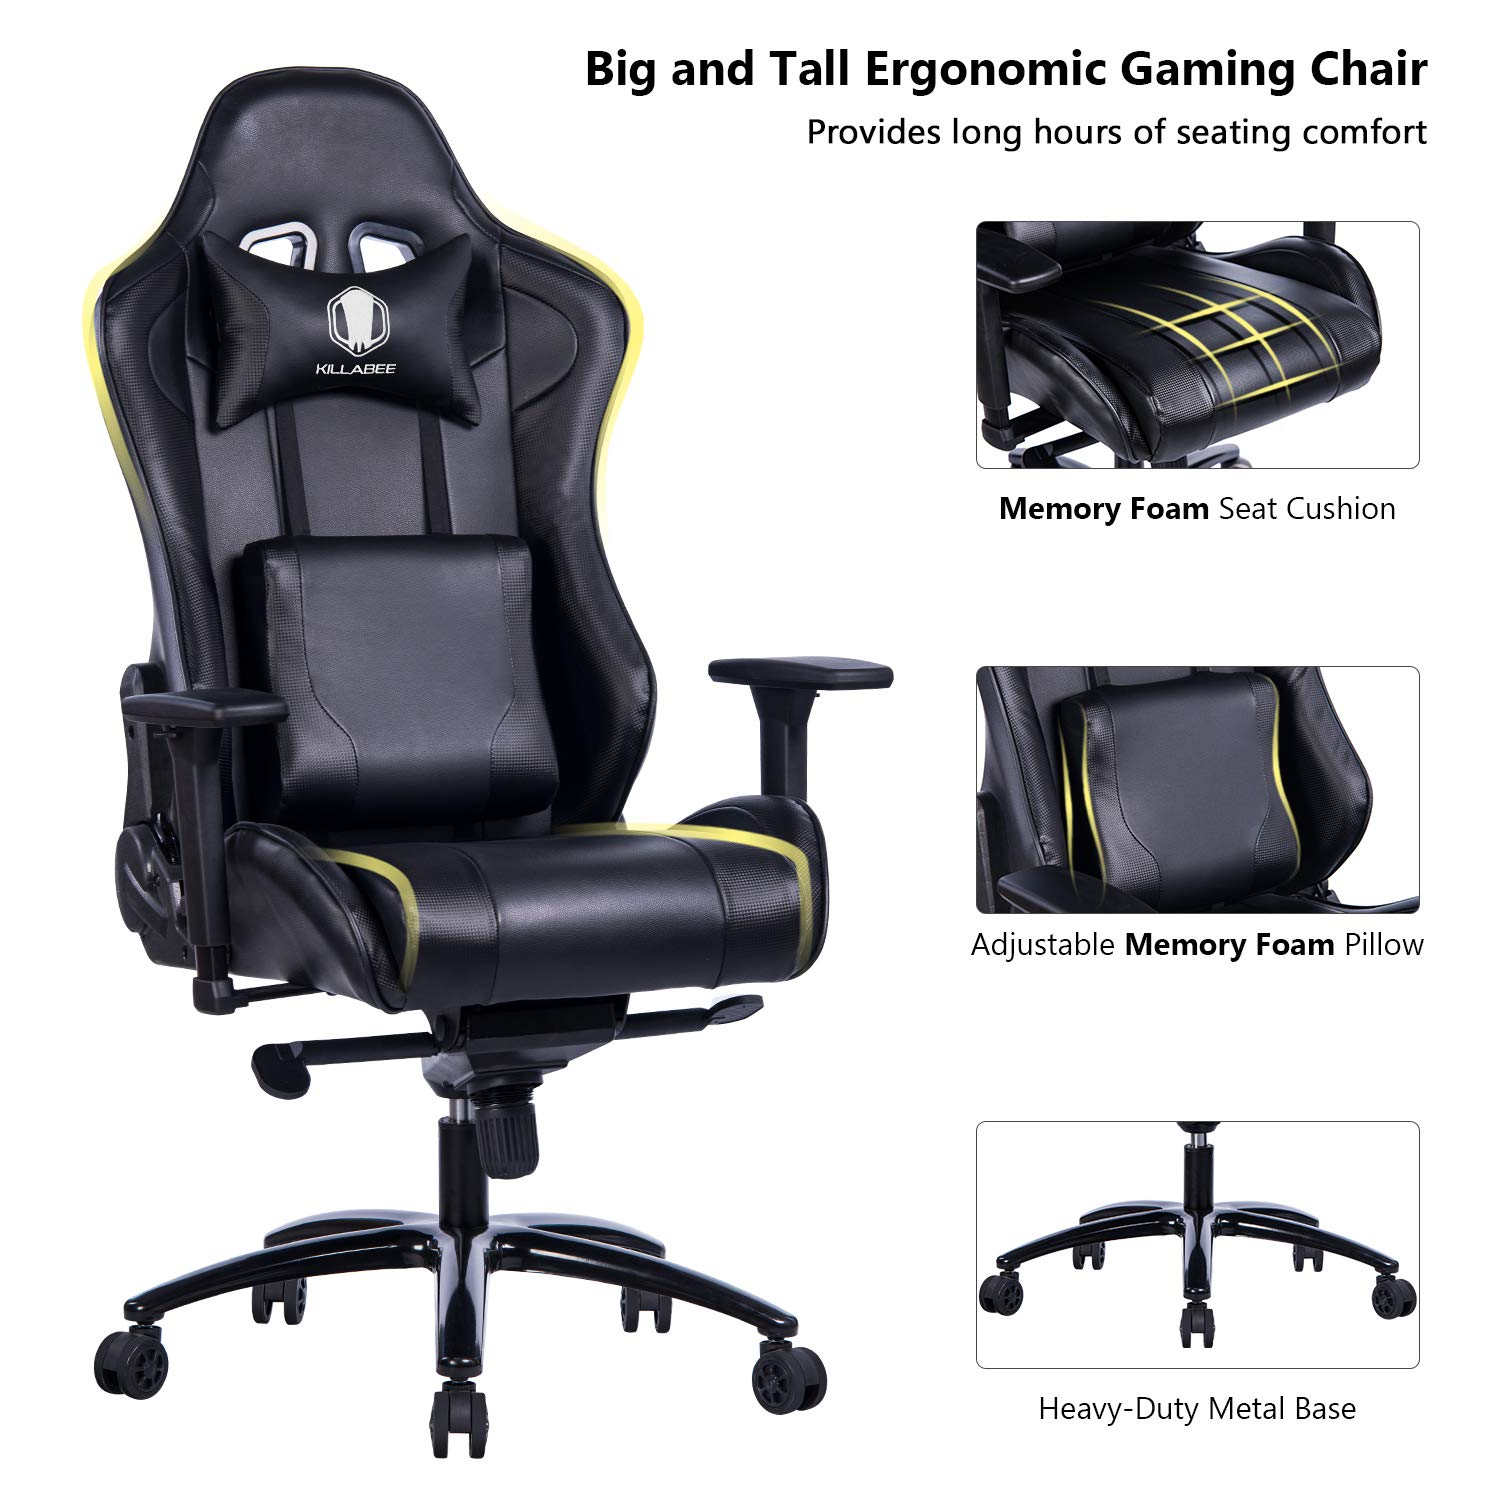 KILLABEE Big and Tall Gaming Chair with Metal Base - Ergonomic Leather Racing Computer Chair High